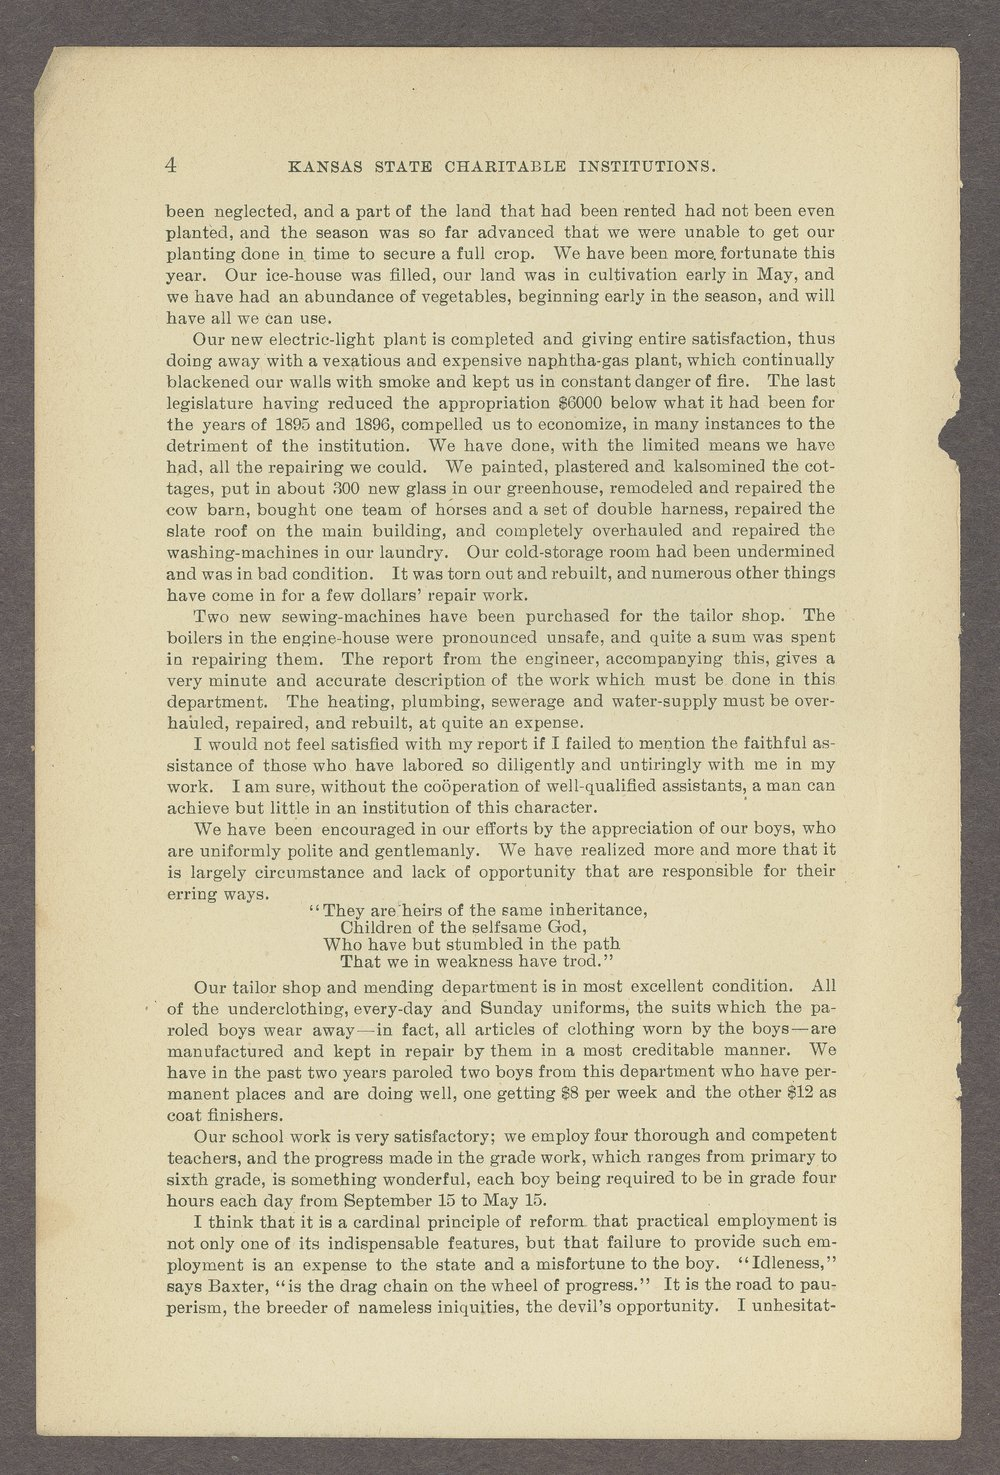 Biennial report of the State Reform School,1898 - 4